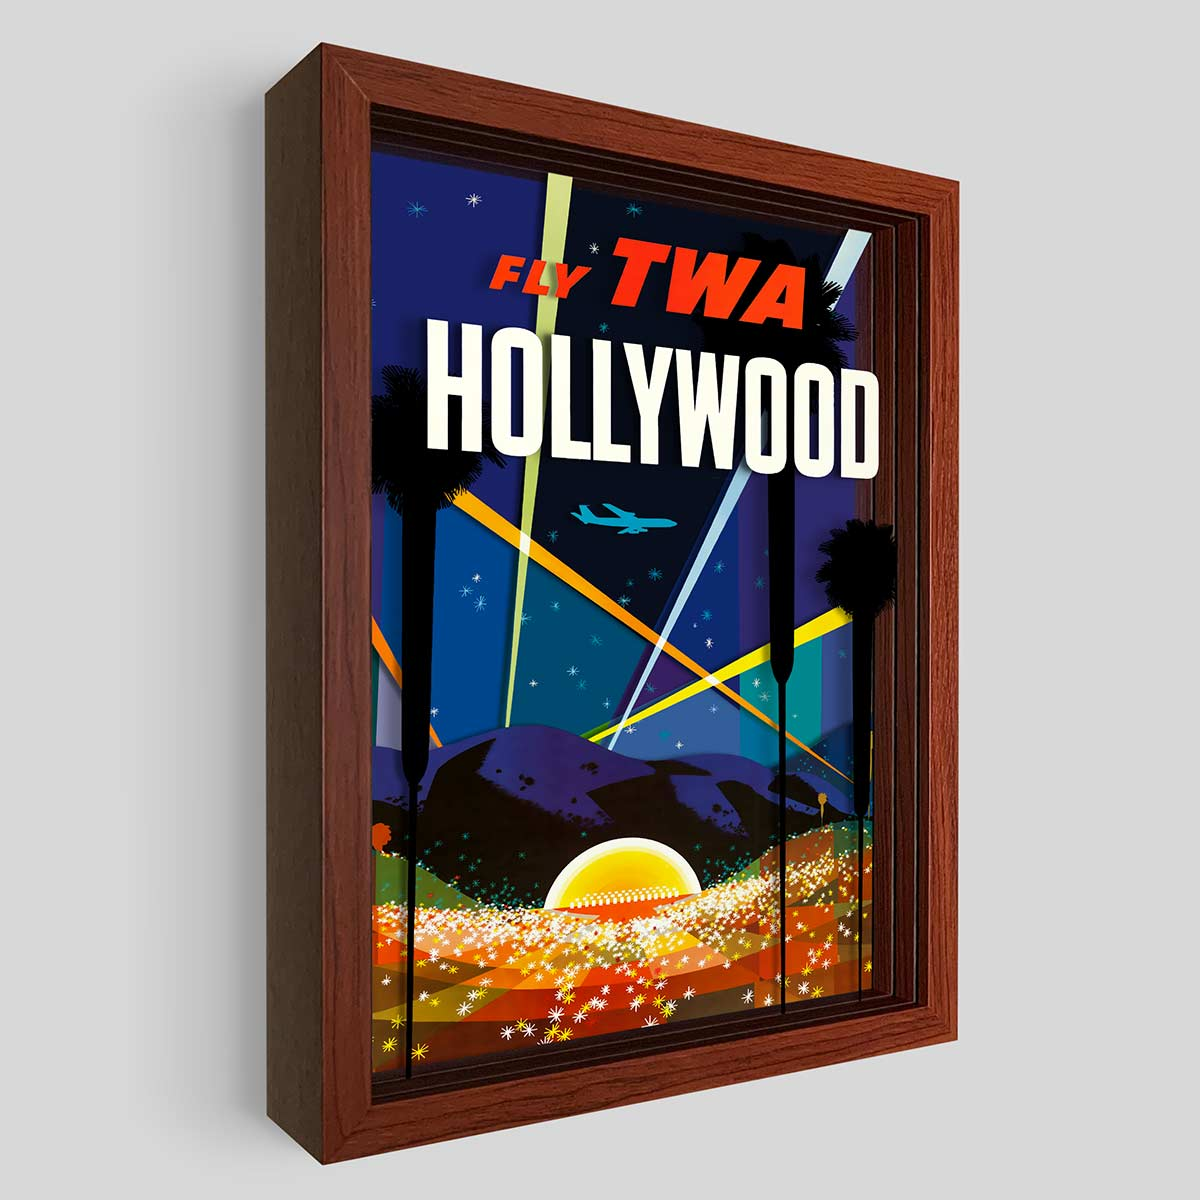 TWA Hollywood Shadowbox Art